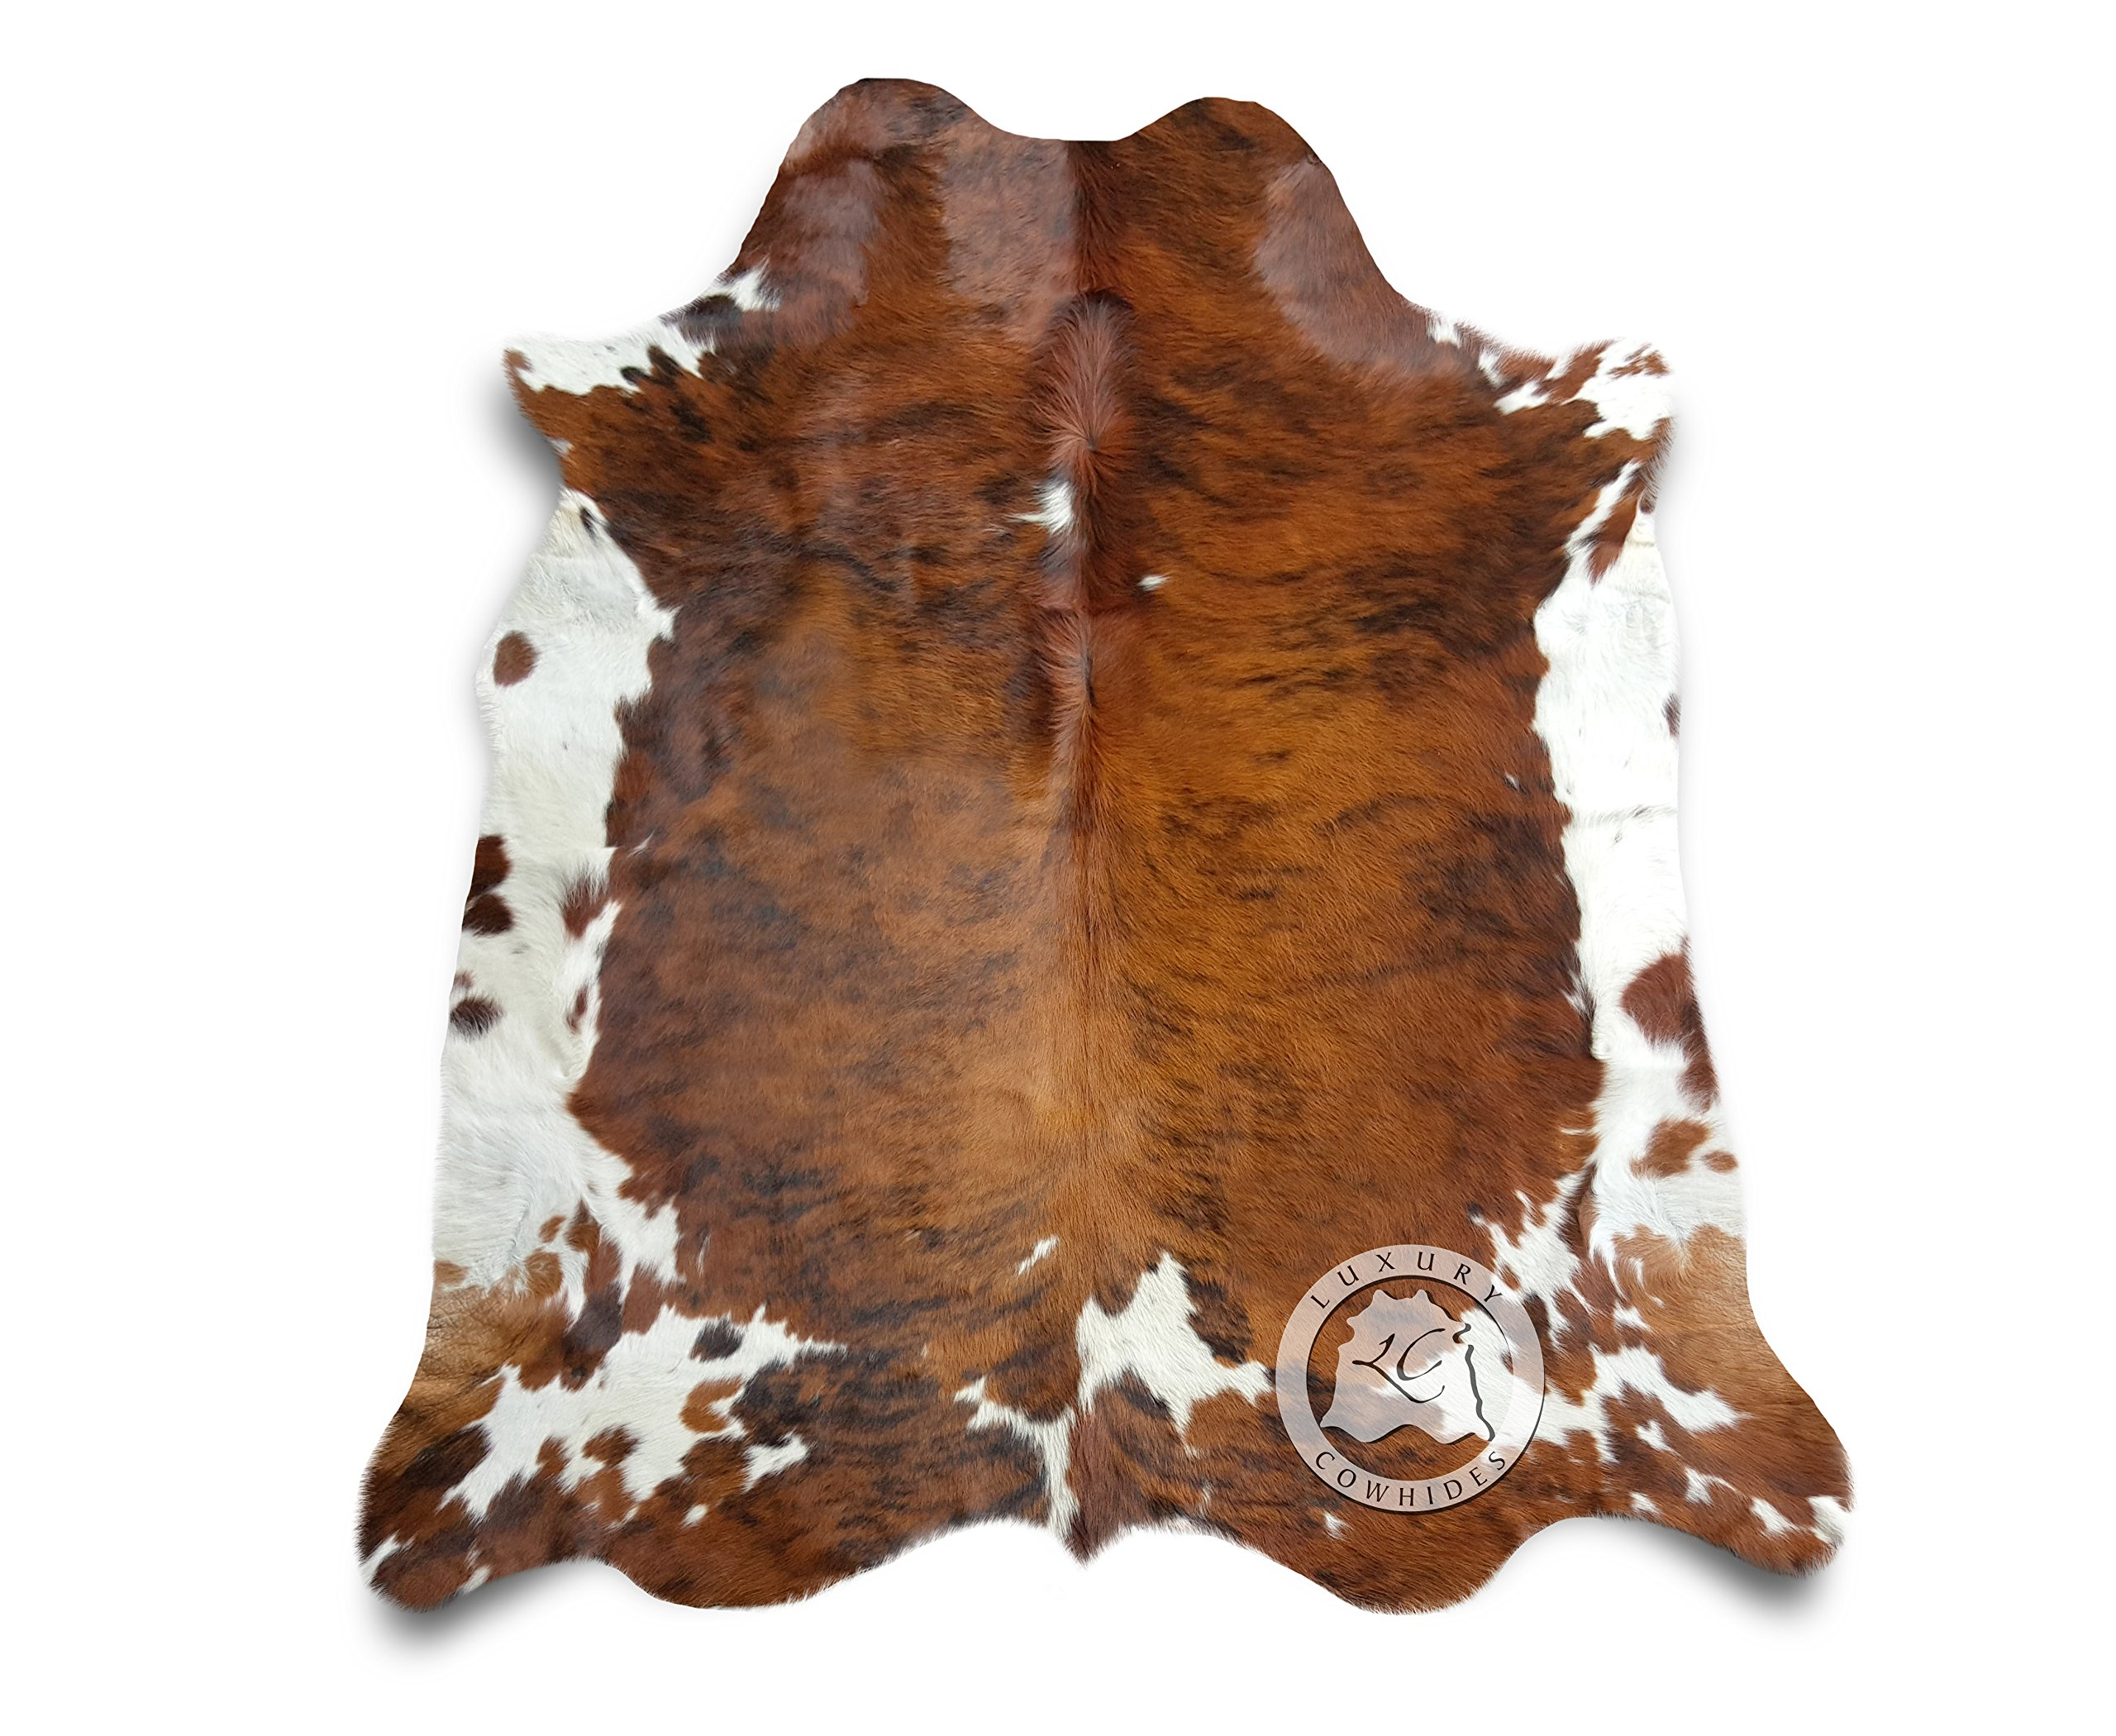 Brindle Tricolor Cowhide Rug XL APPROX 6ft x 8ft 180cm x 240cm - Top Quality from LUXURY COWHIDES by Sunshine Cowhides